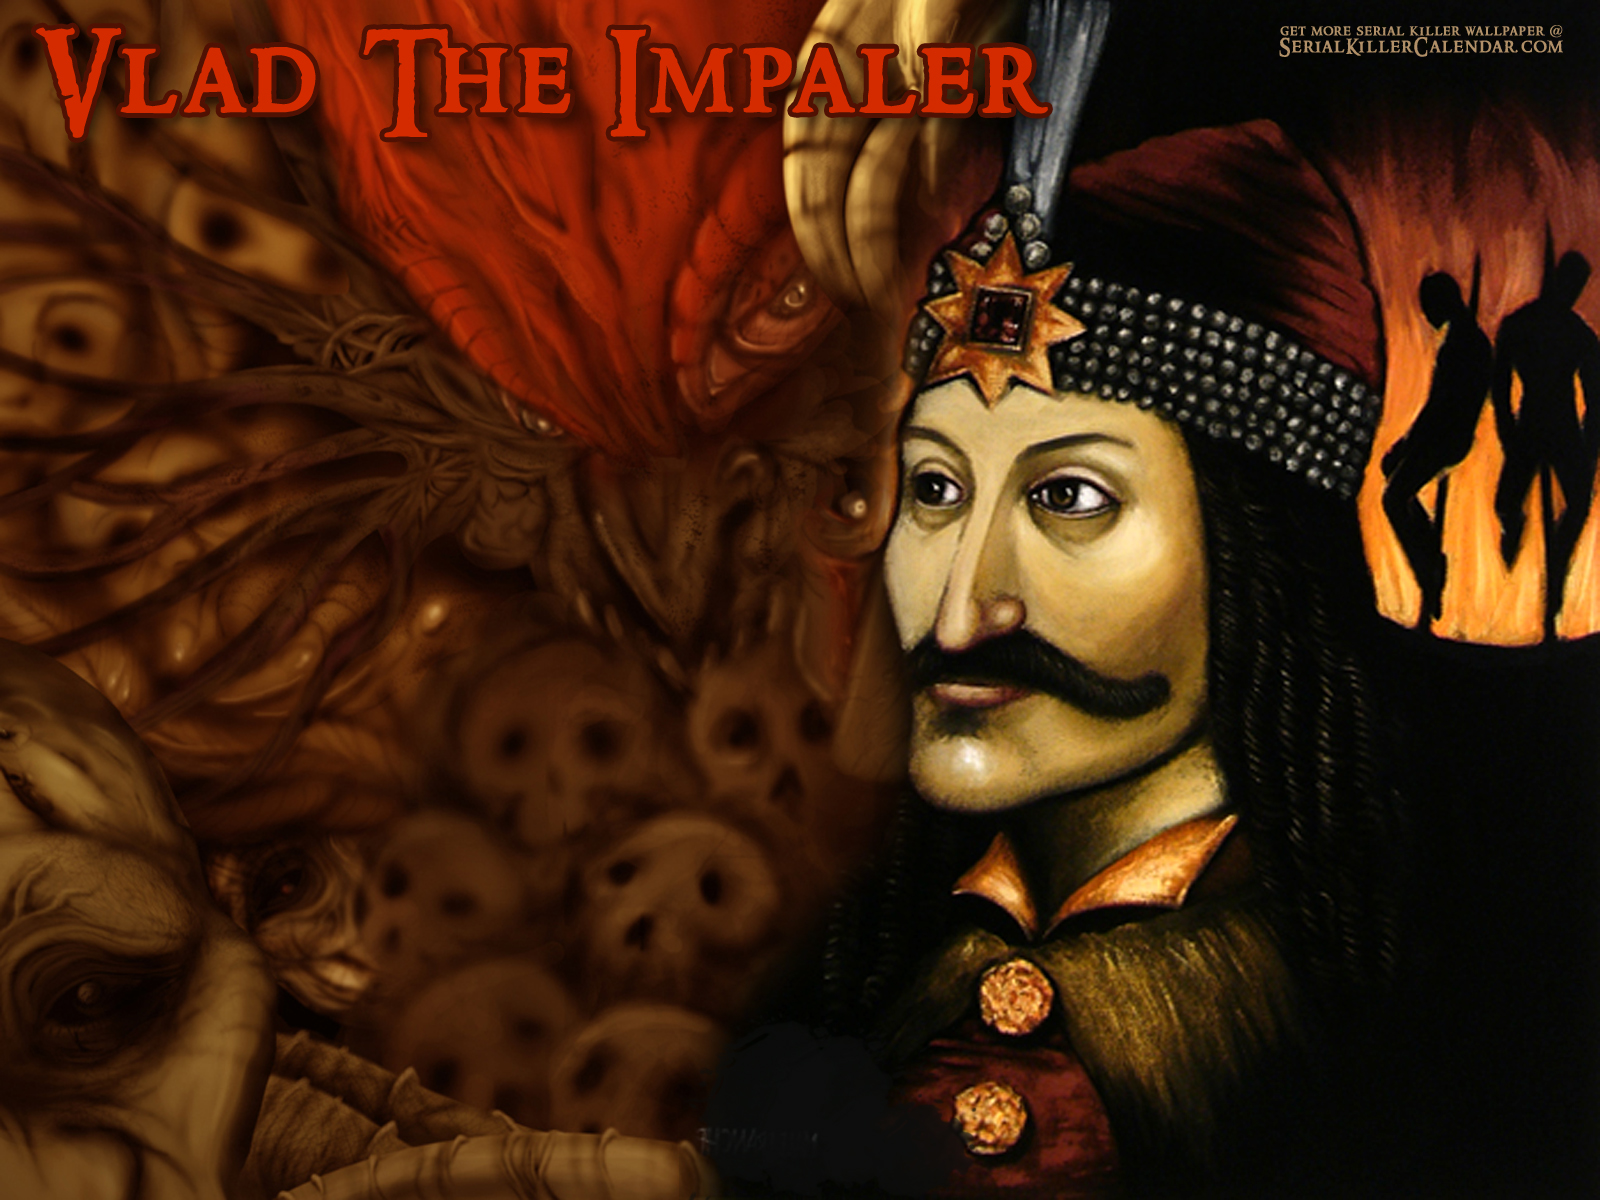 http://images.fanpop.com/images/image_uploads/Vlad-the-Impaler-serial-killers-586891_1600_1200.jpg